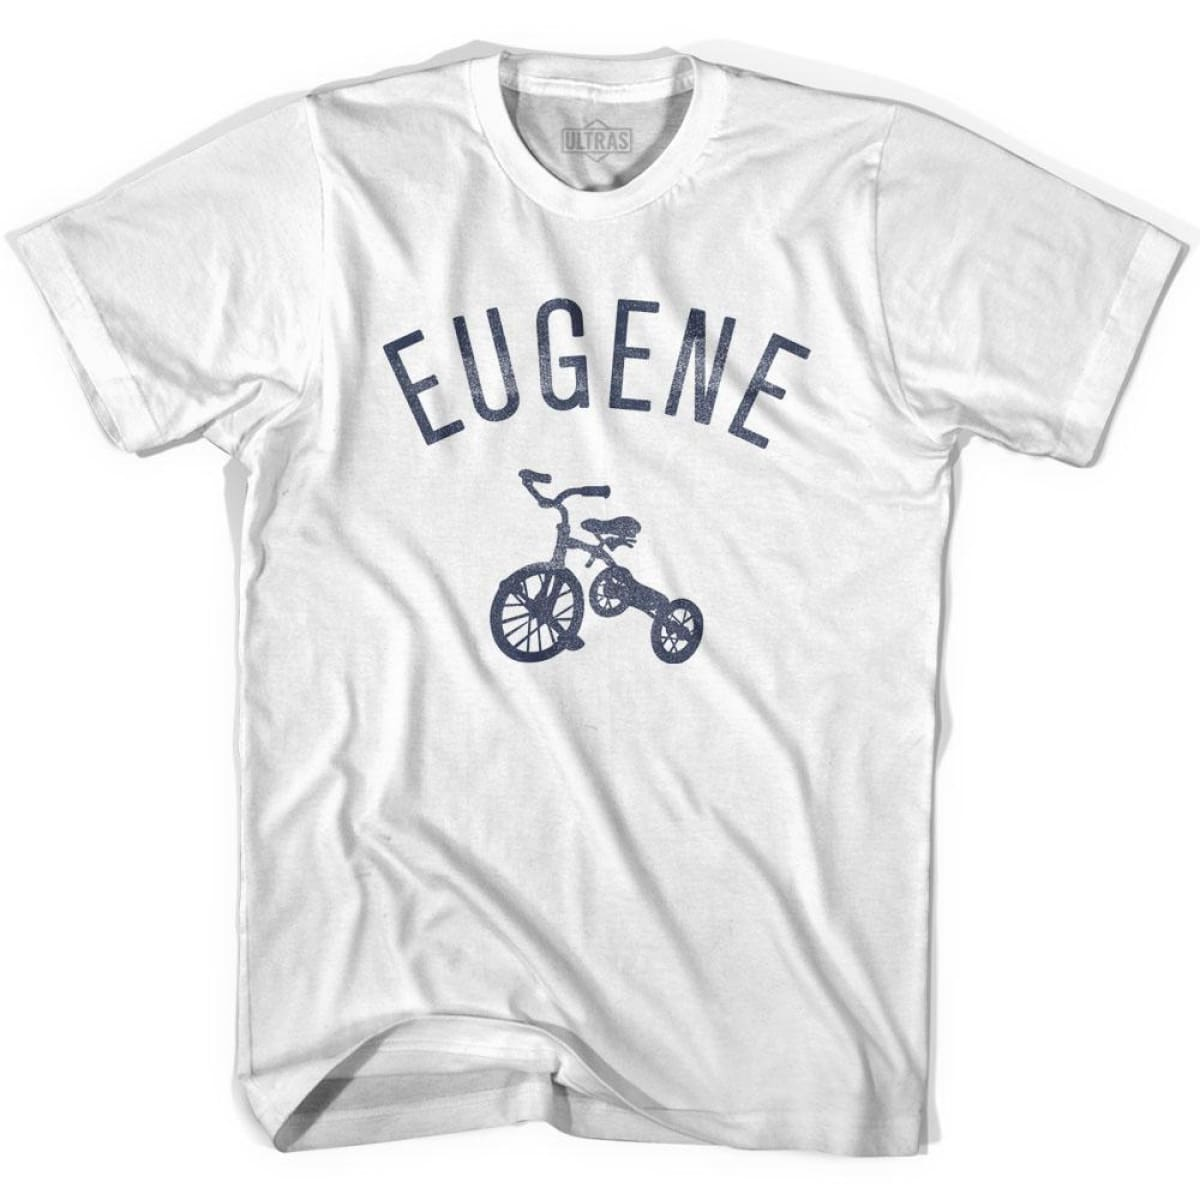 Eugene City Tricycle Womens Cotton T-shirt - Tricycle City